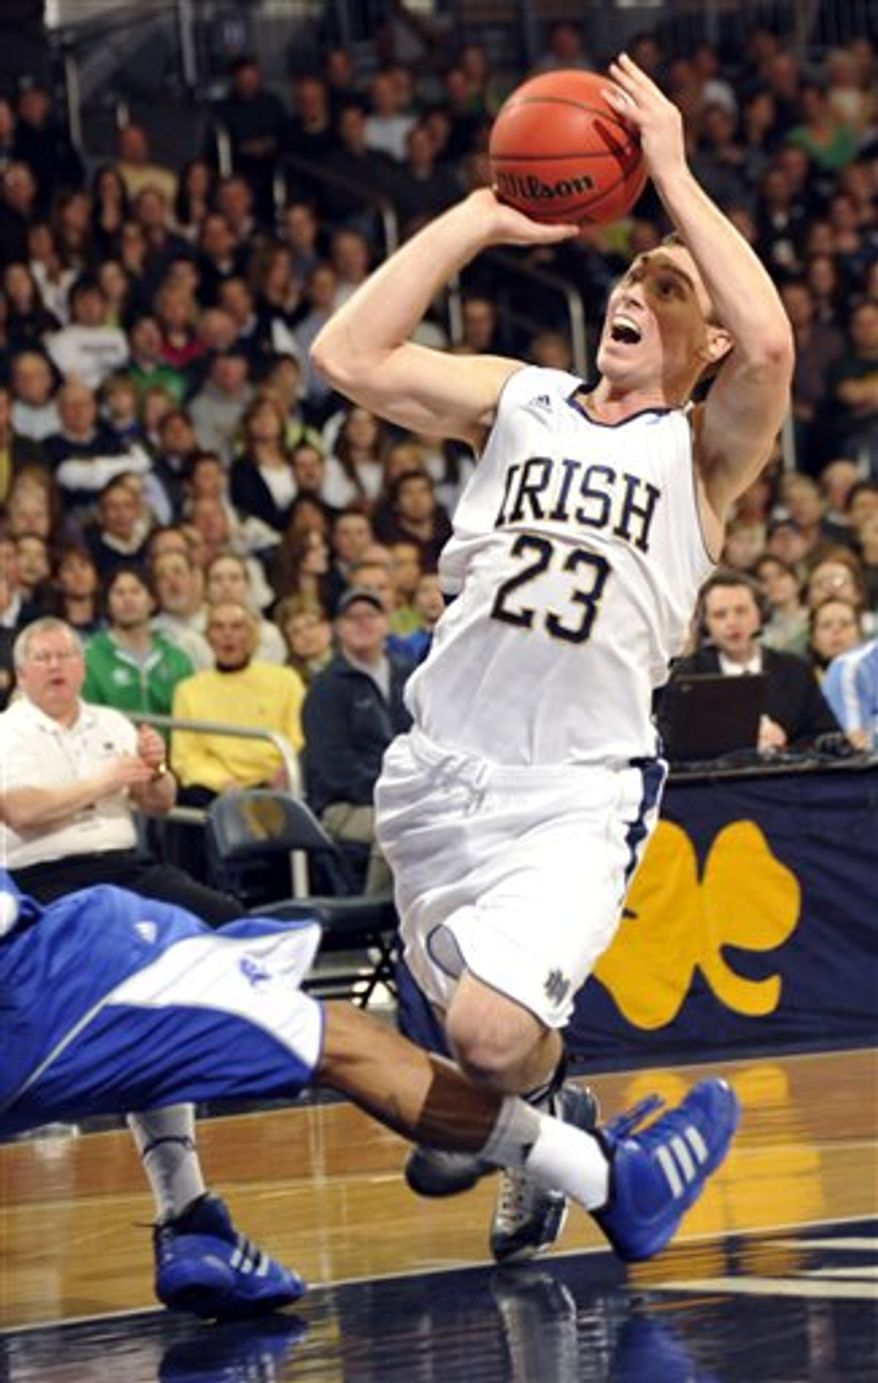 Notre Dame guard Ben Hansbrough trips as he puts up a shot during first half action in an NCAA college basketball game with Seton Hall Saturday Feb. 26, 2011 in South Bend, Ind. Notre Dame won 60-48 with Hansbrough scoring 21 points.  (AP Photo/Joe Raymond)